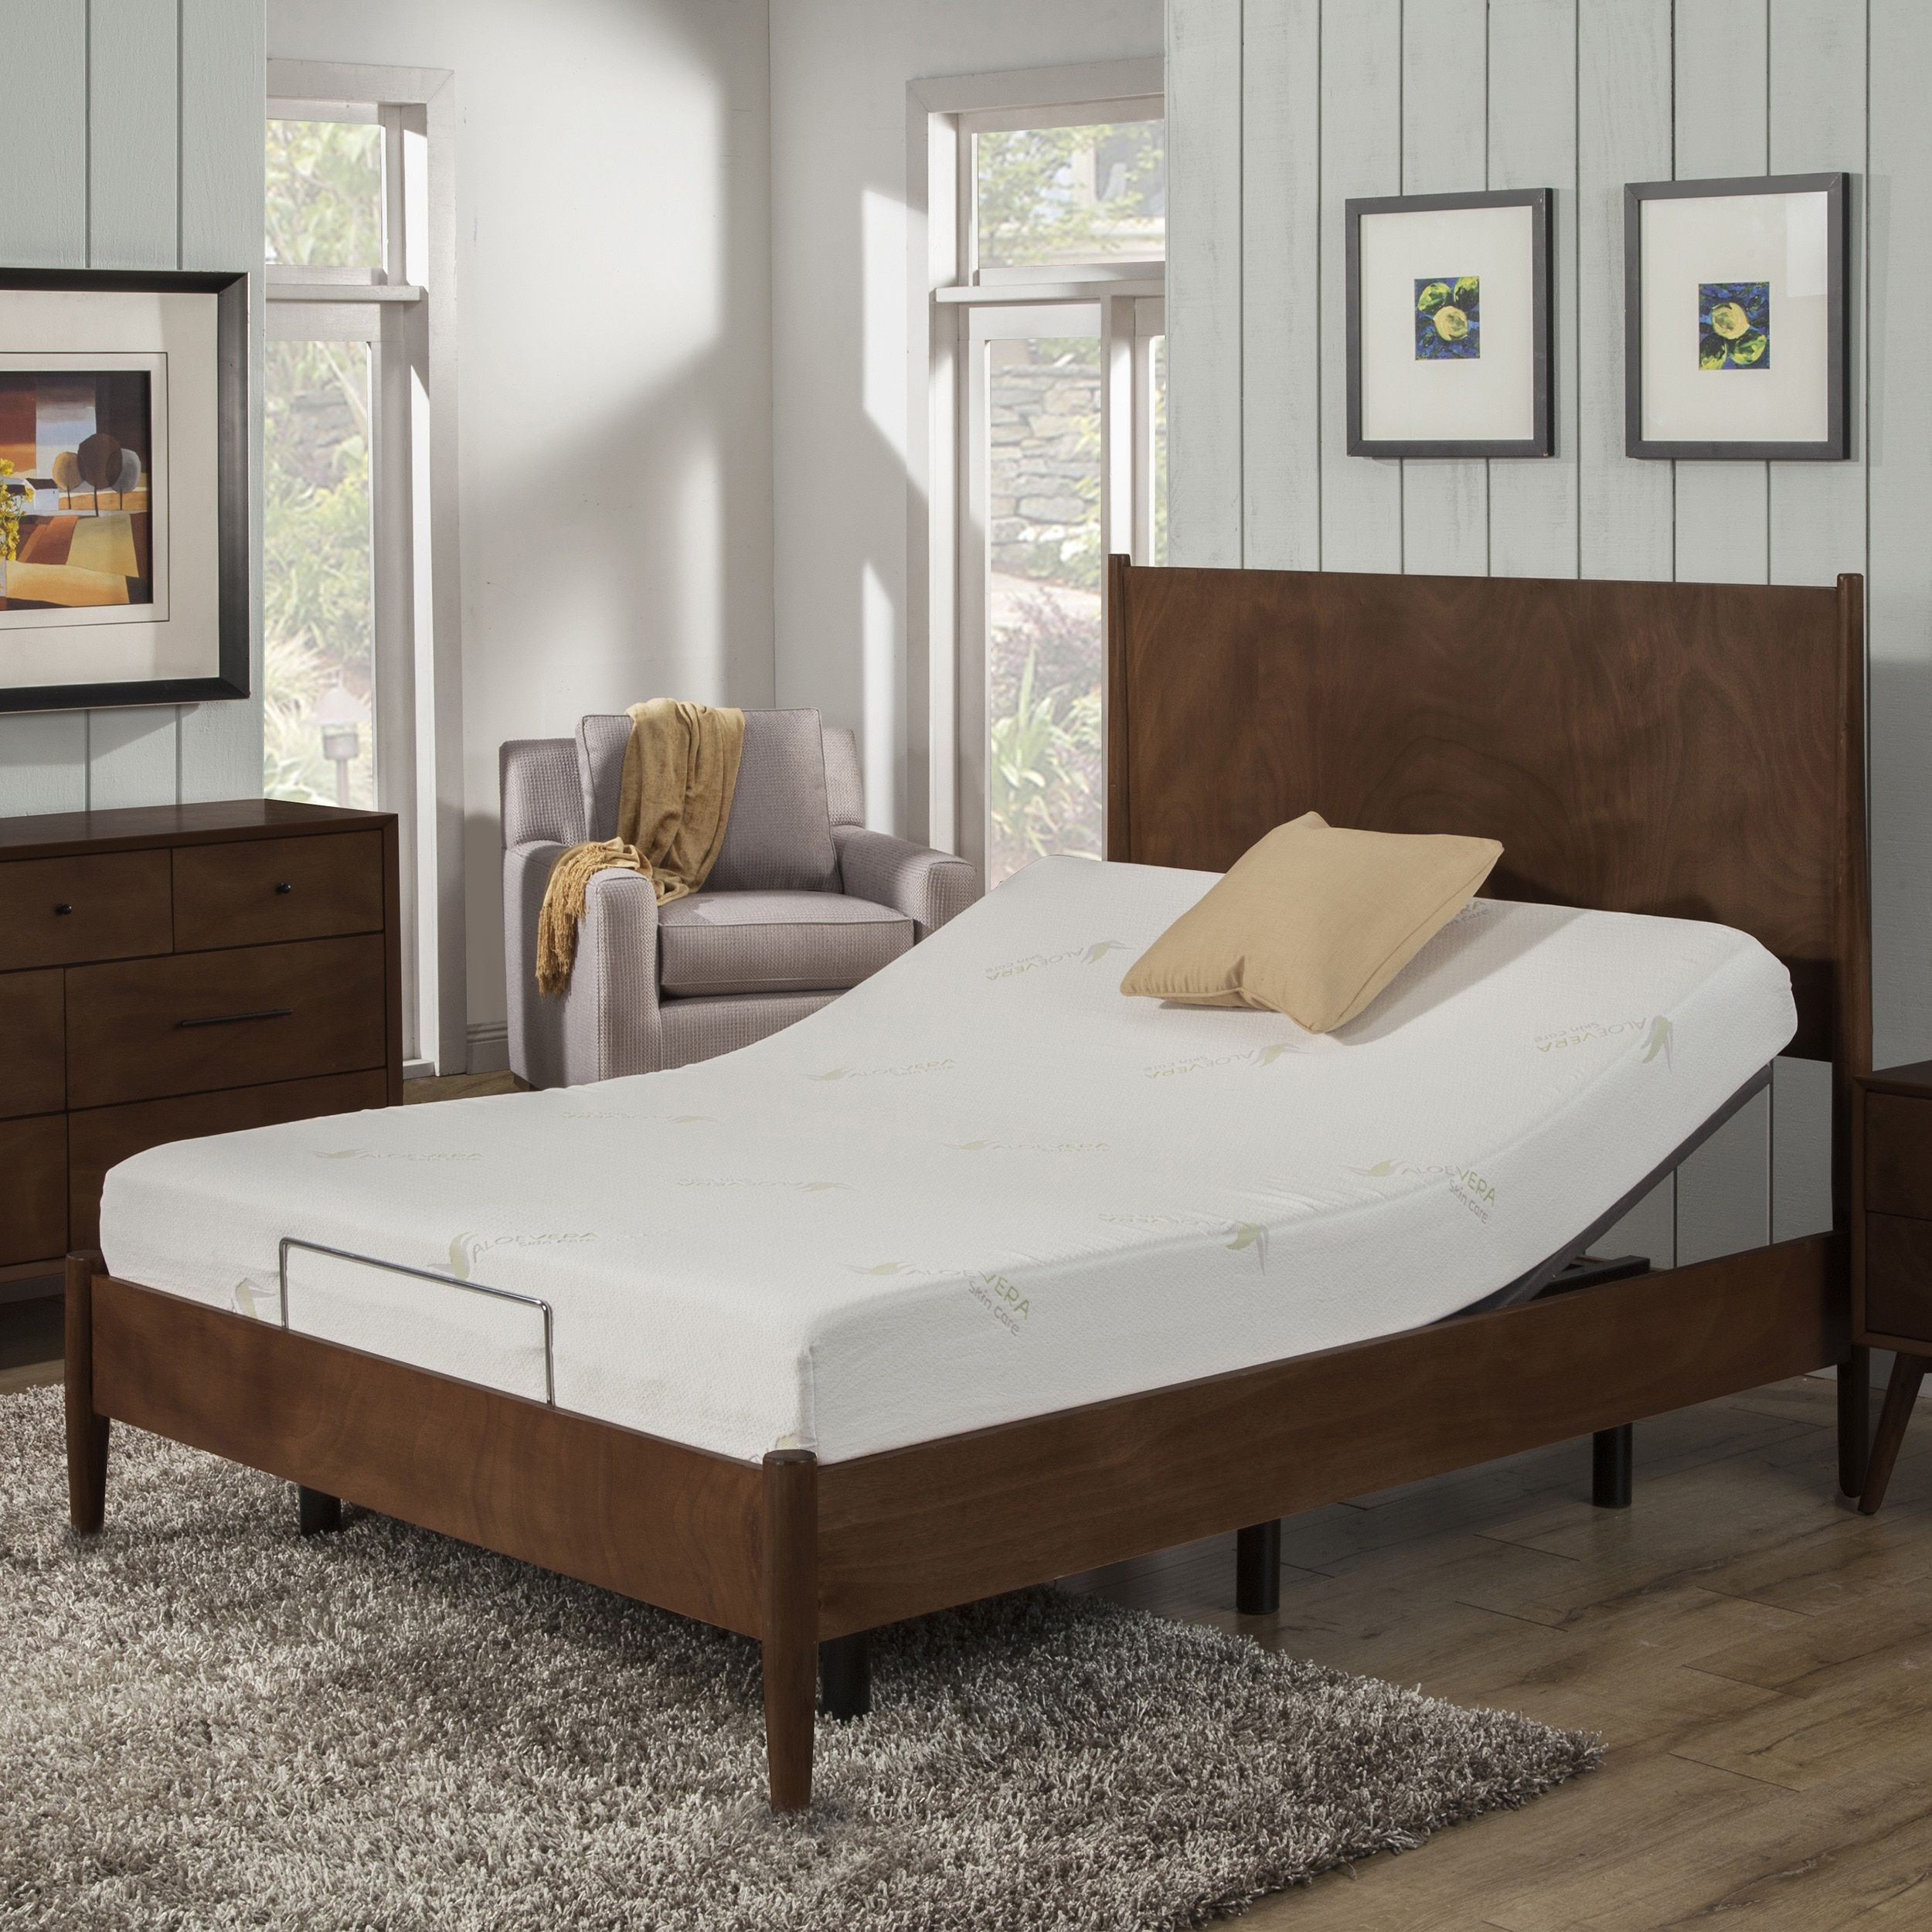 AC Pacific 8-inch Twin XL-size Aloe Vera Memory Foam Mattress and  Adjustable Bed Base Set by AC Pacific